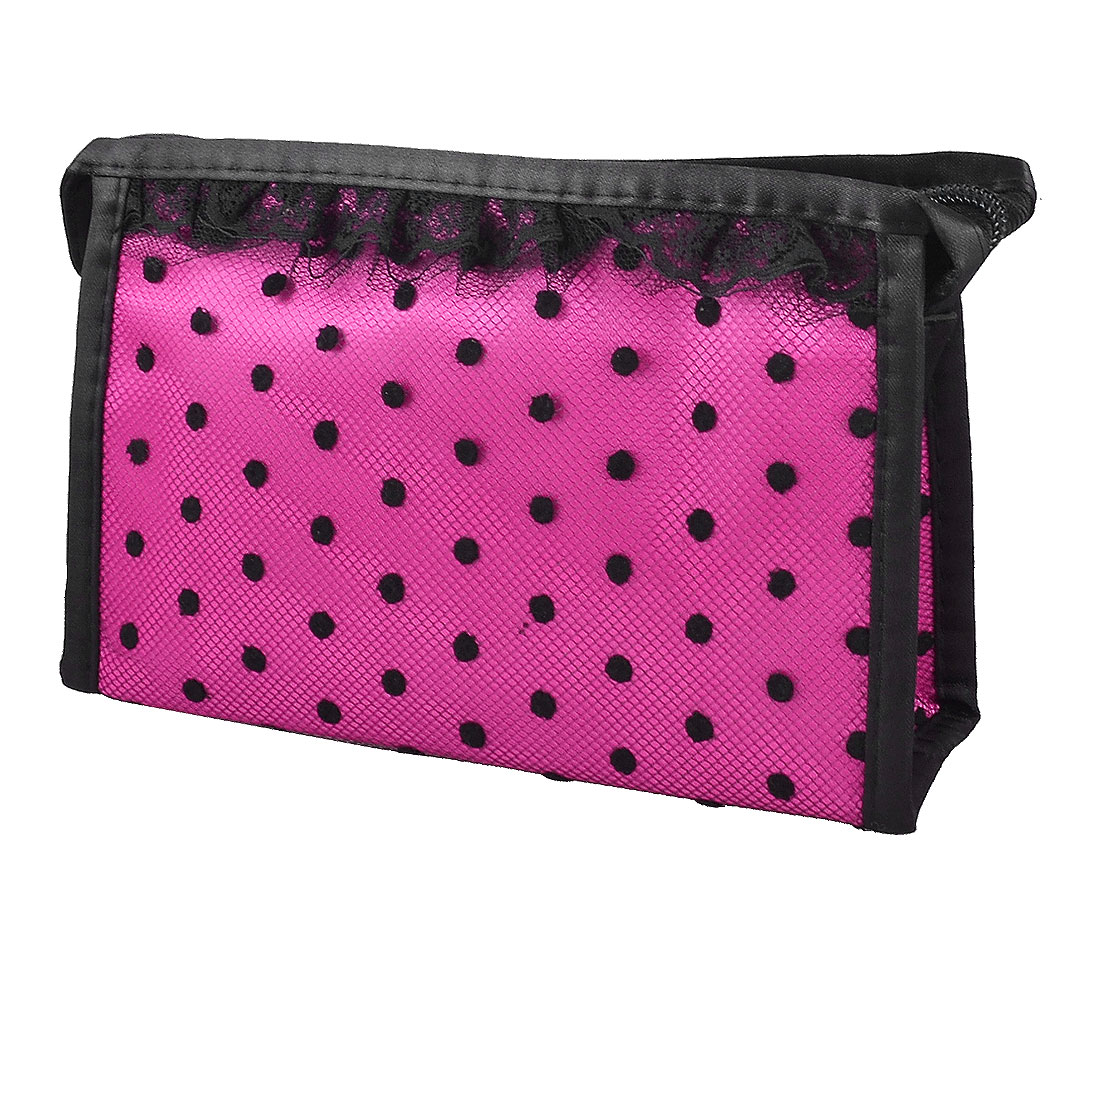 Zip up Pockets Mirror Inner Black Dots Meshy Lace Fuchsia Makeup Cosmetic Pouch Hand Bag